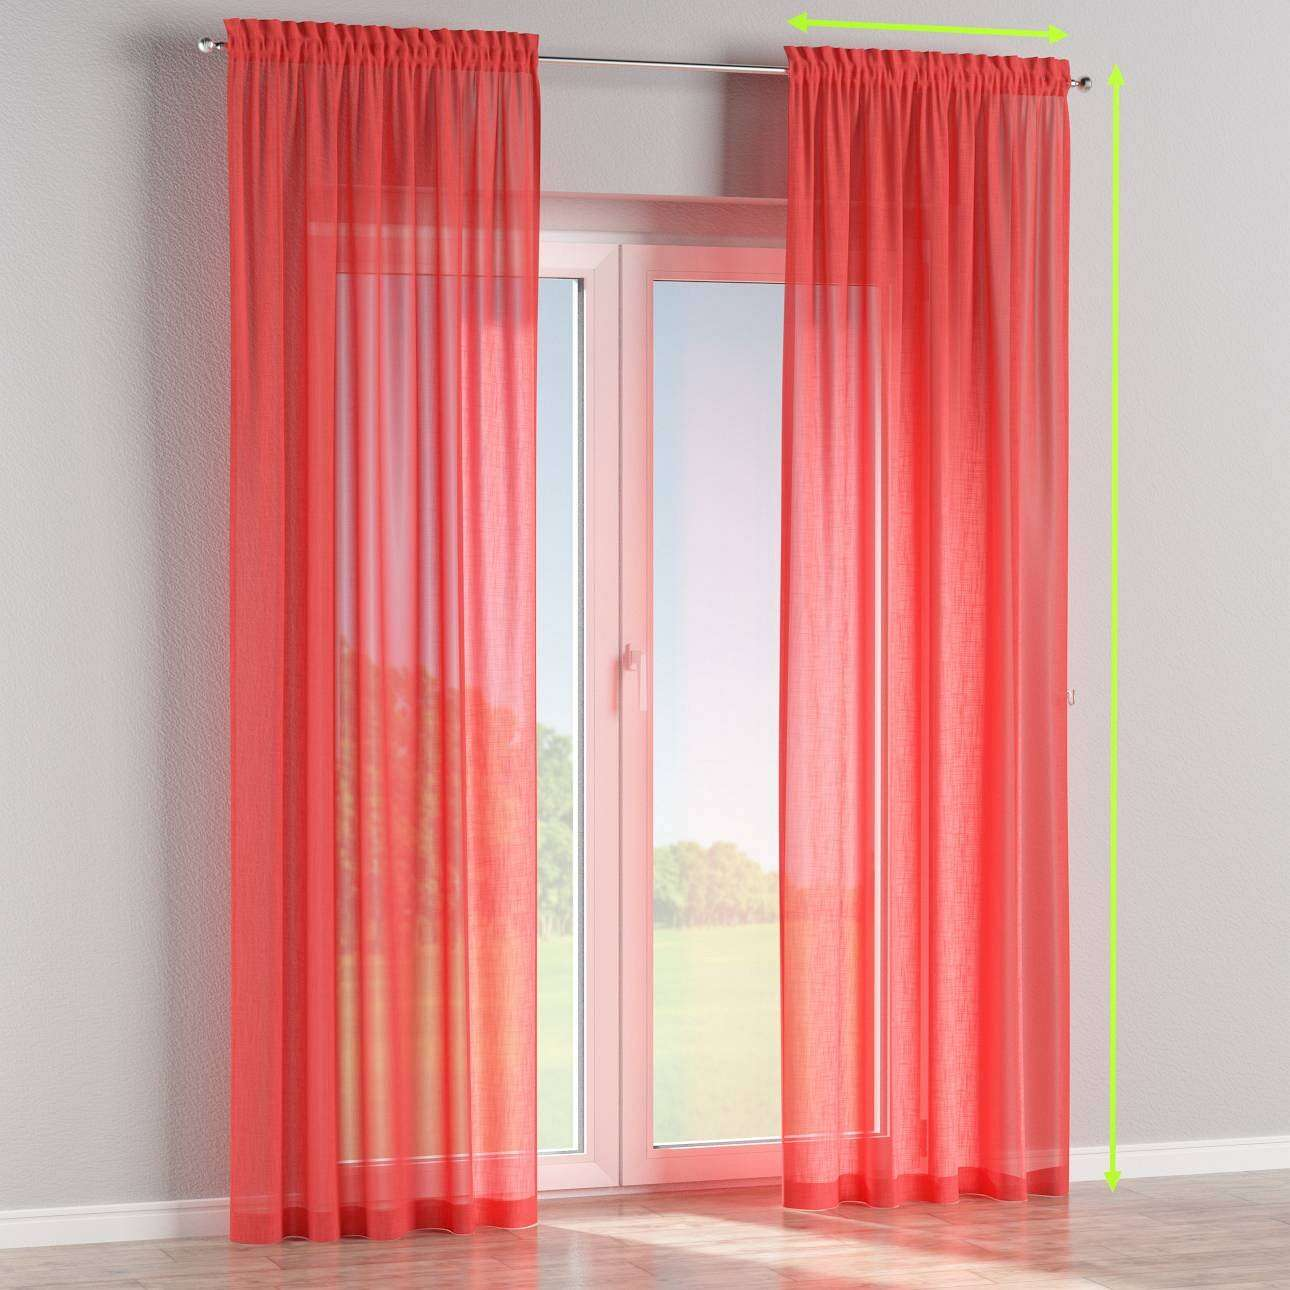 Slot and frill curtains in collection Romantica, fabric: 128-02